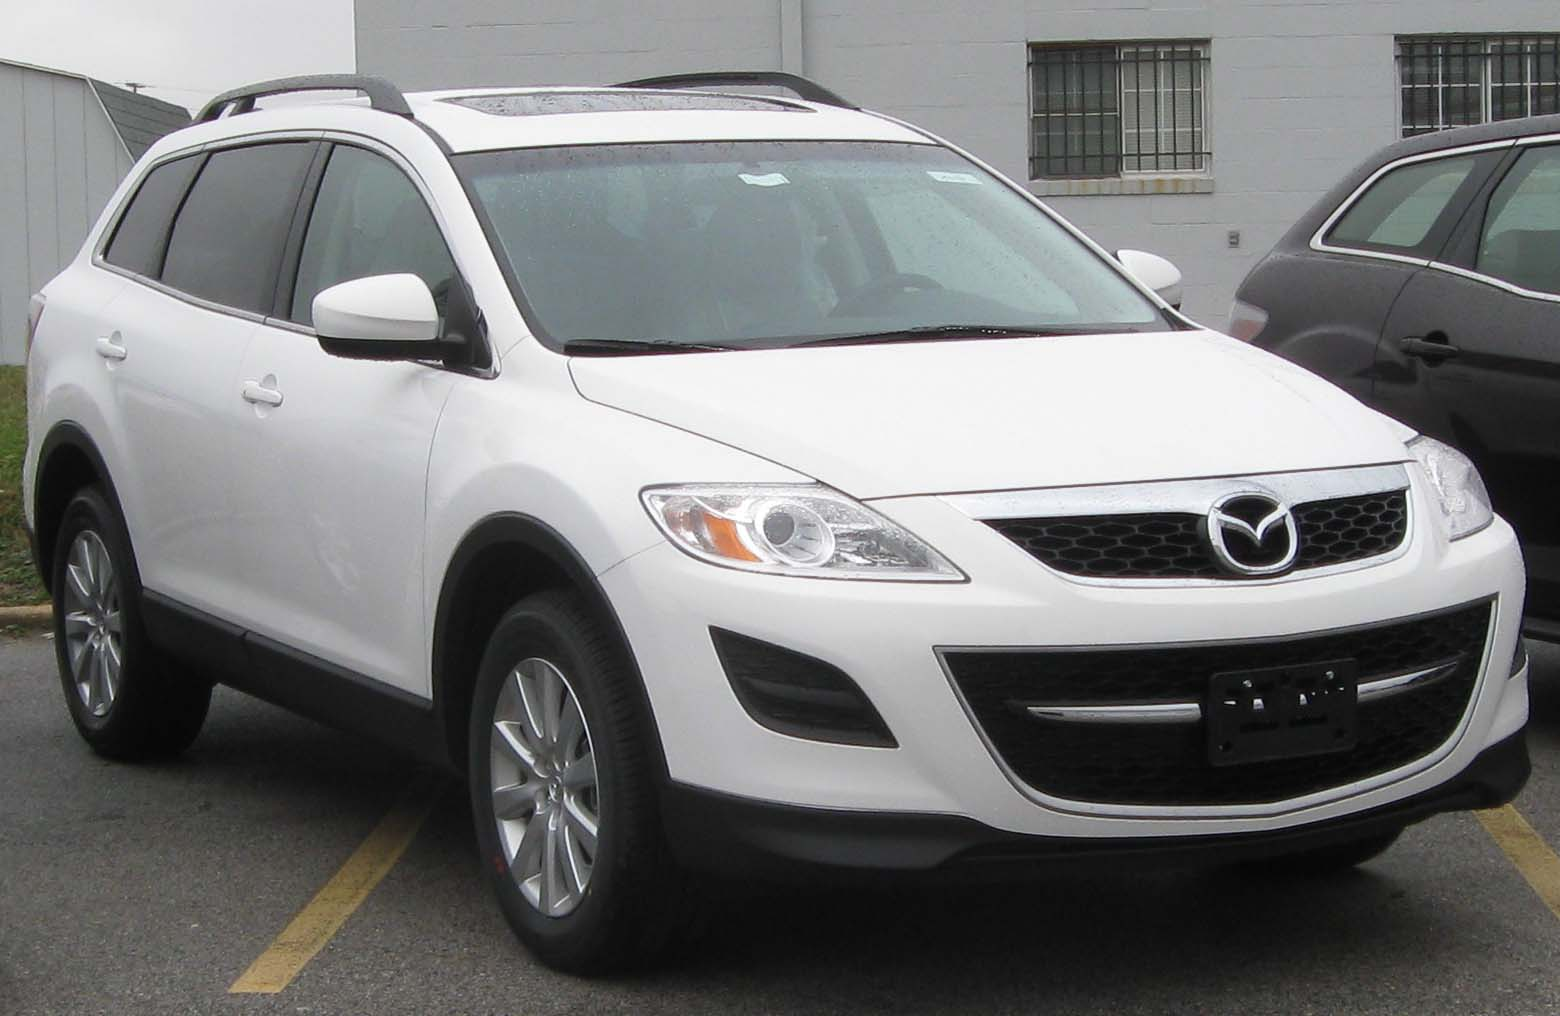 2010 mazda cx 9 information and photos zombiedrive. Black Bedroom Furniture Sets. Home Design Ideas